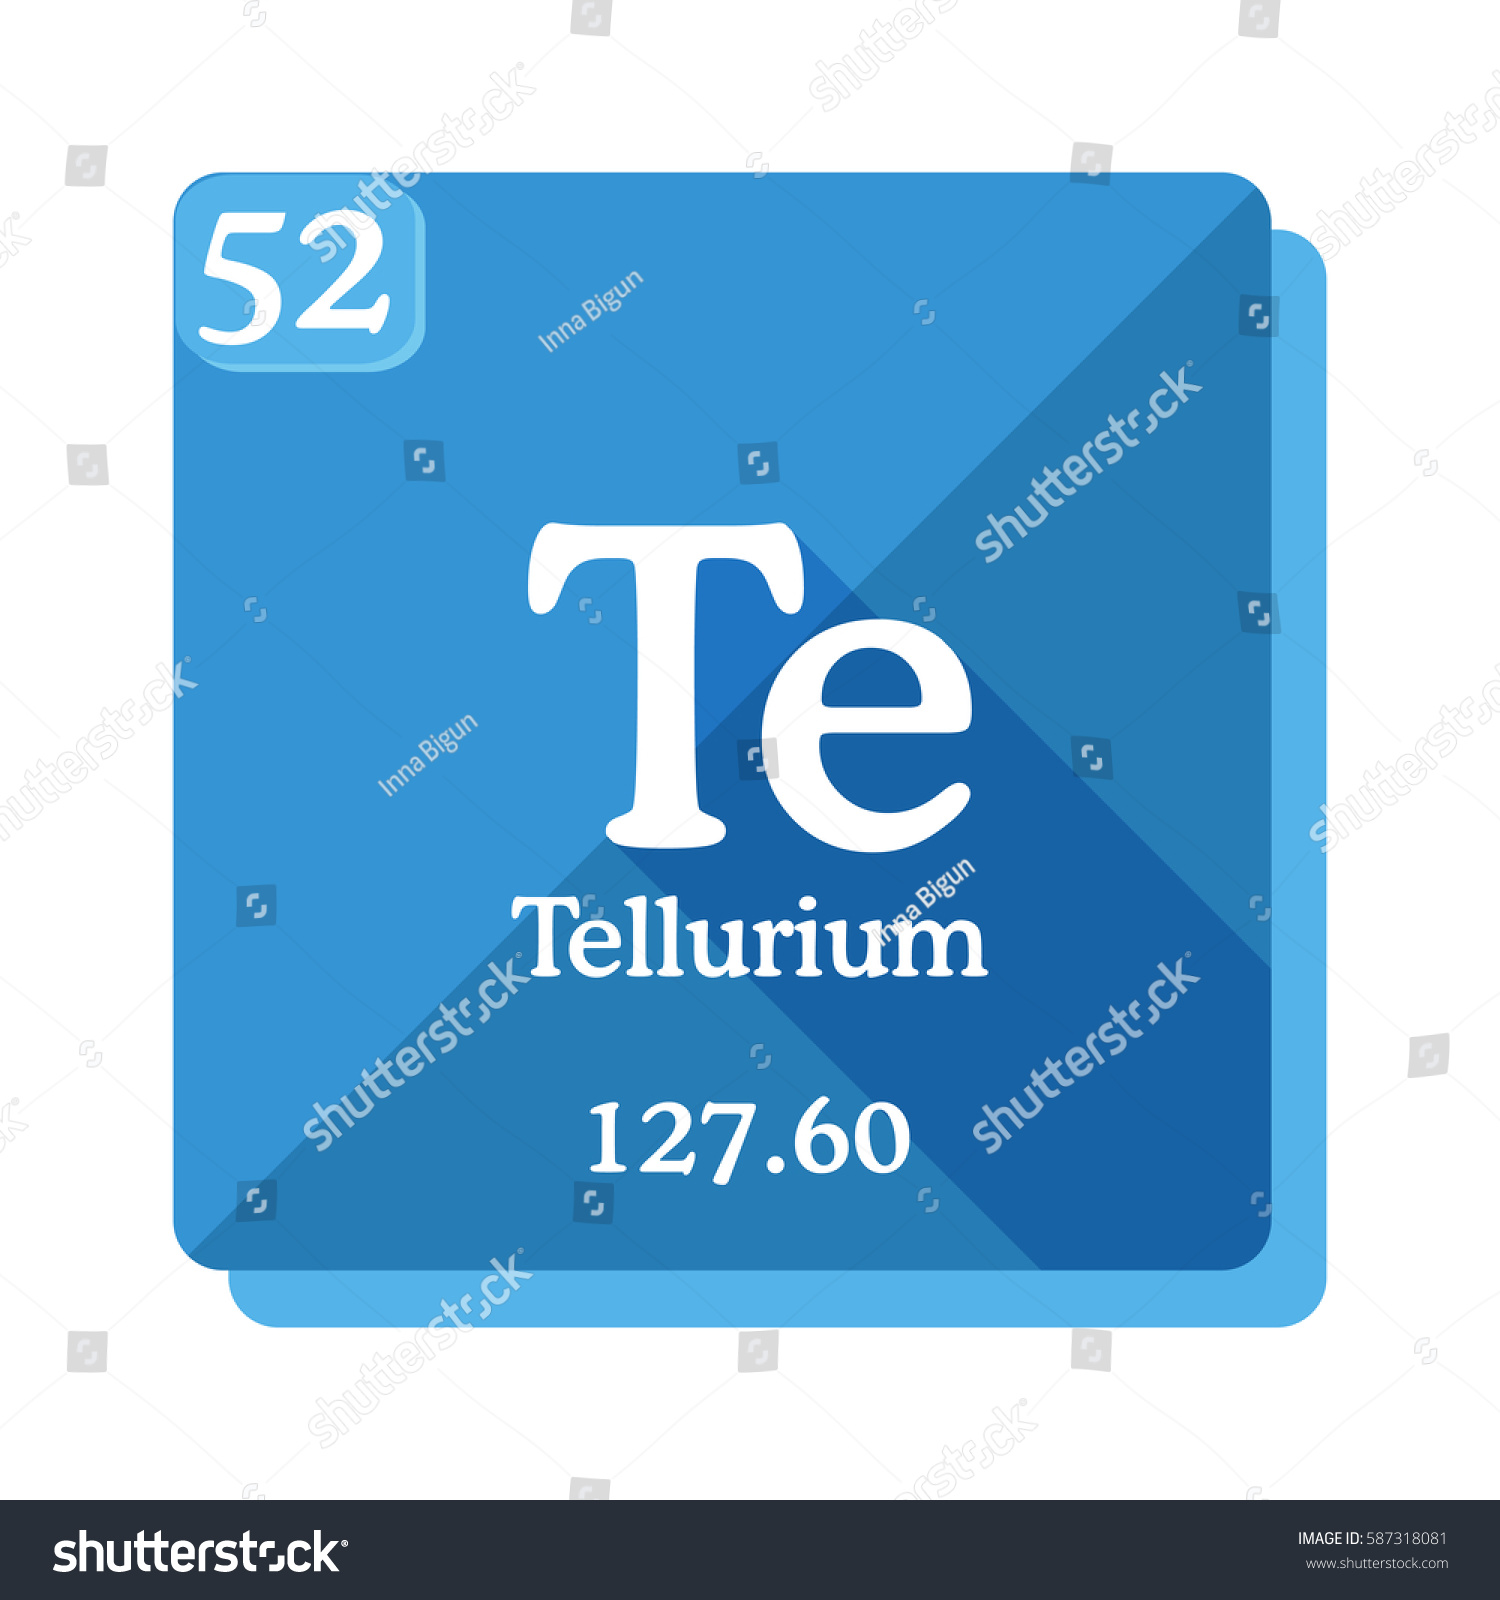 Tellurium te element periodic table flat stock vector 587318081 tellurium te element of the periodic table flat icon with long shadow gamestrikefo Choice Image